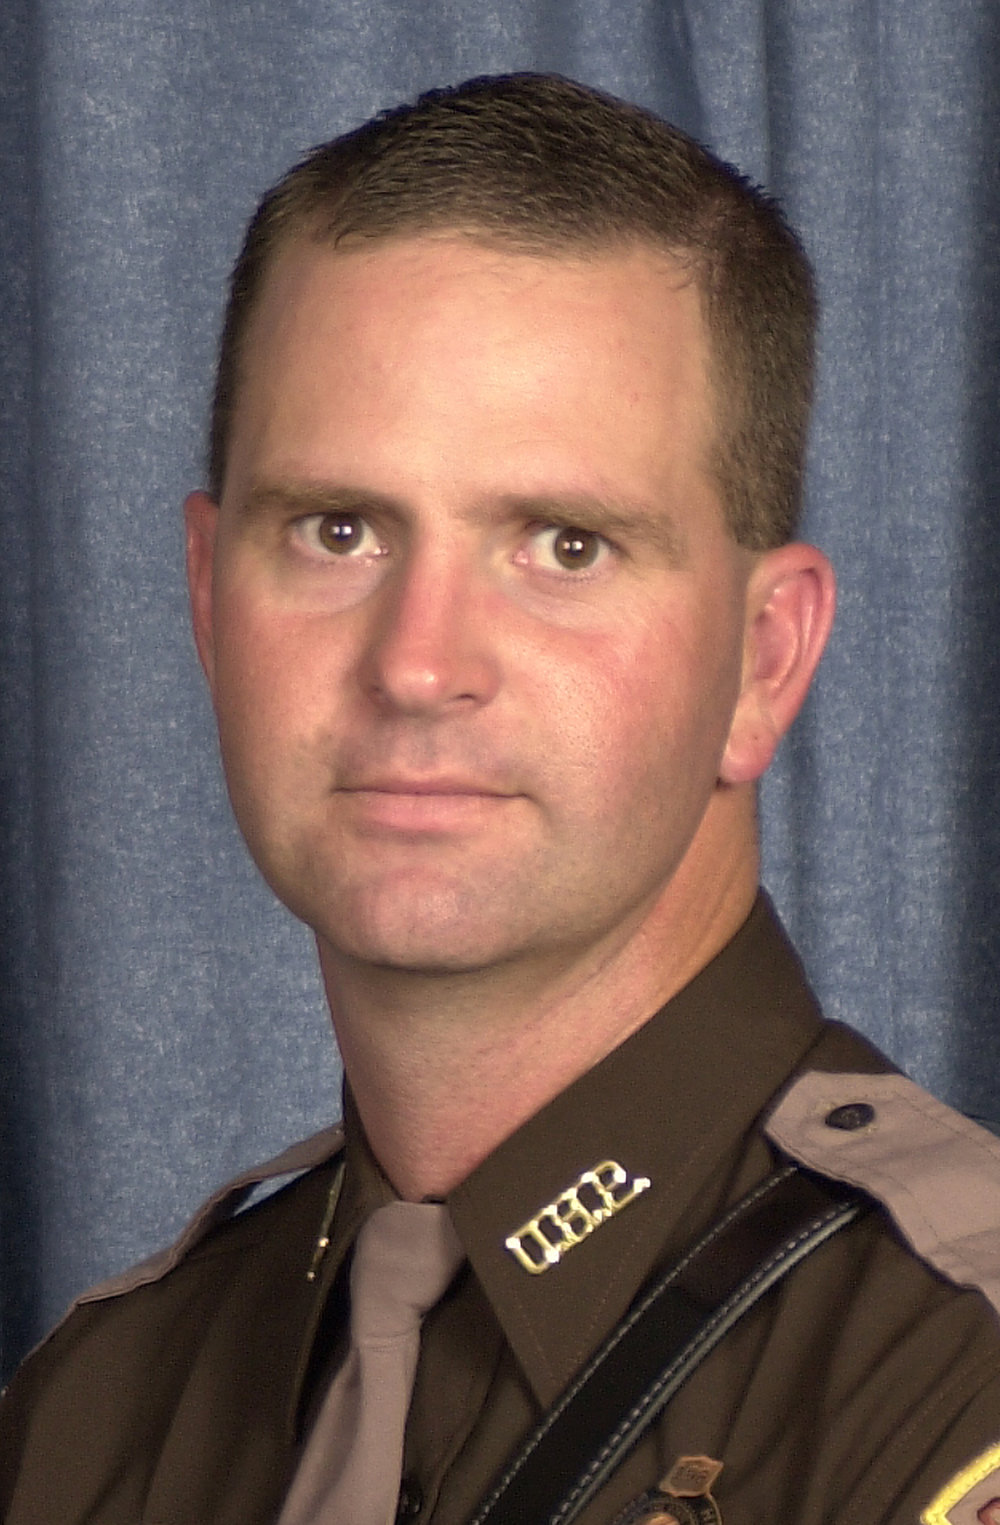 Trooper Nikky Green    December 26, 2003   Green joined the OHP in 1997. Trooper Green was tragically gunned down by an individual subject in Cotton County. Green made contact with the individual, who was operating a mobile meth lab on a rural county road just west of Devol in the early morning hours. Review of the trooper's video tape from his patrol car shows he subsequently attempted to arrest the subject and a scuffle ensued resulting in Green being shot and killed.